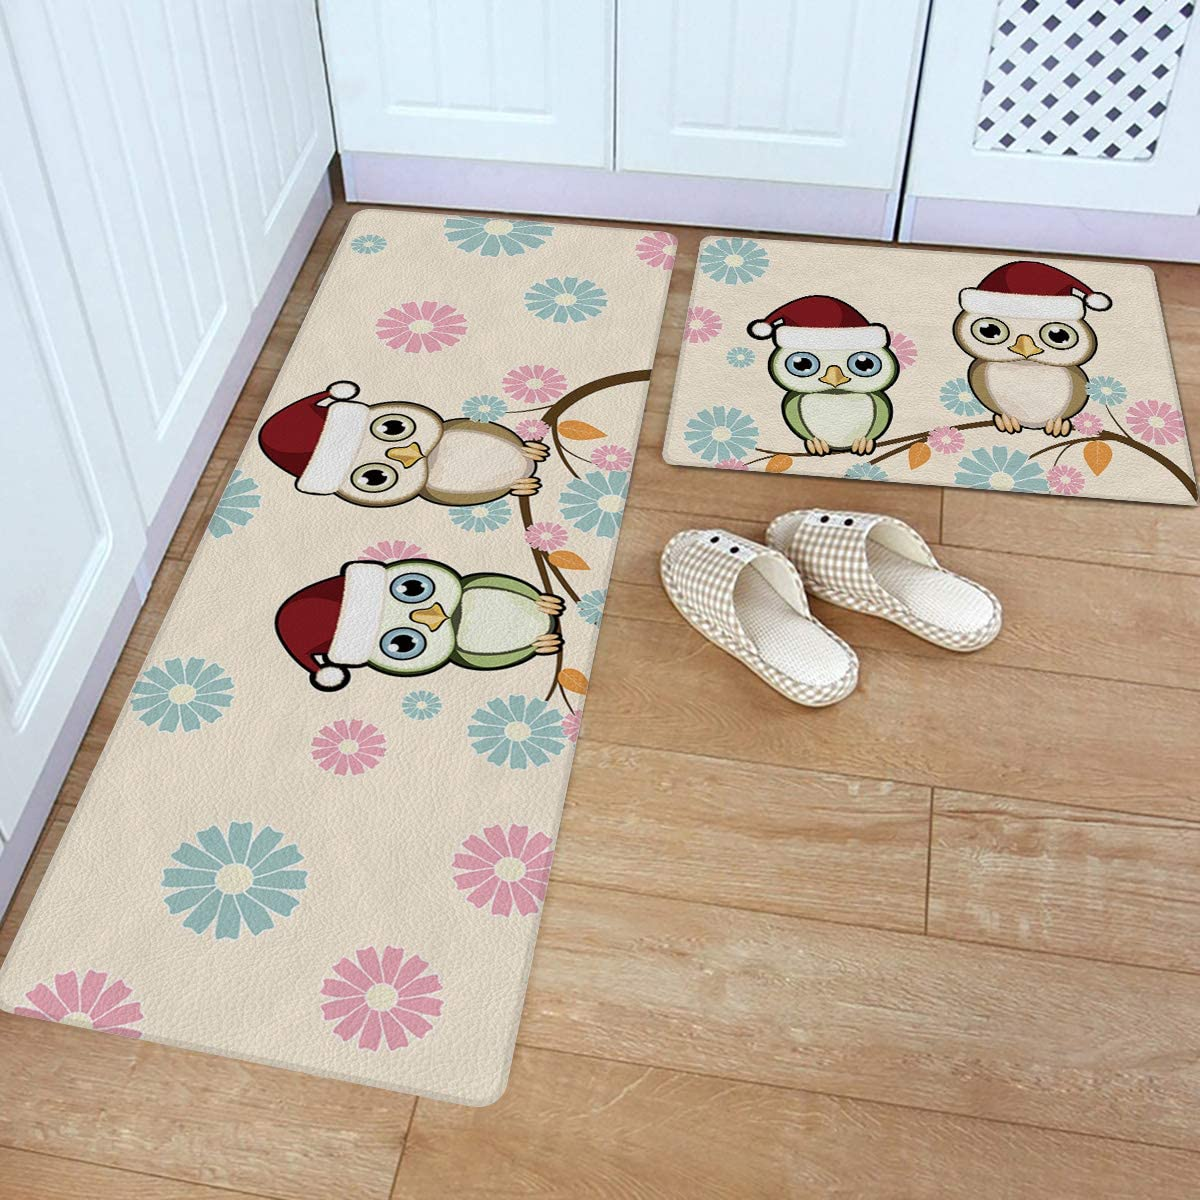 Max 76% OFF 2 Piece Kitchen Rugs Set New Orleans Mall Standing Christmas Mats Leather Theme